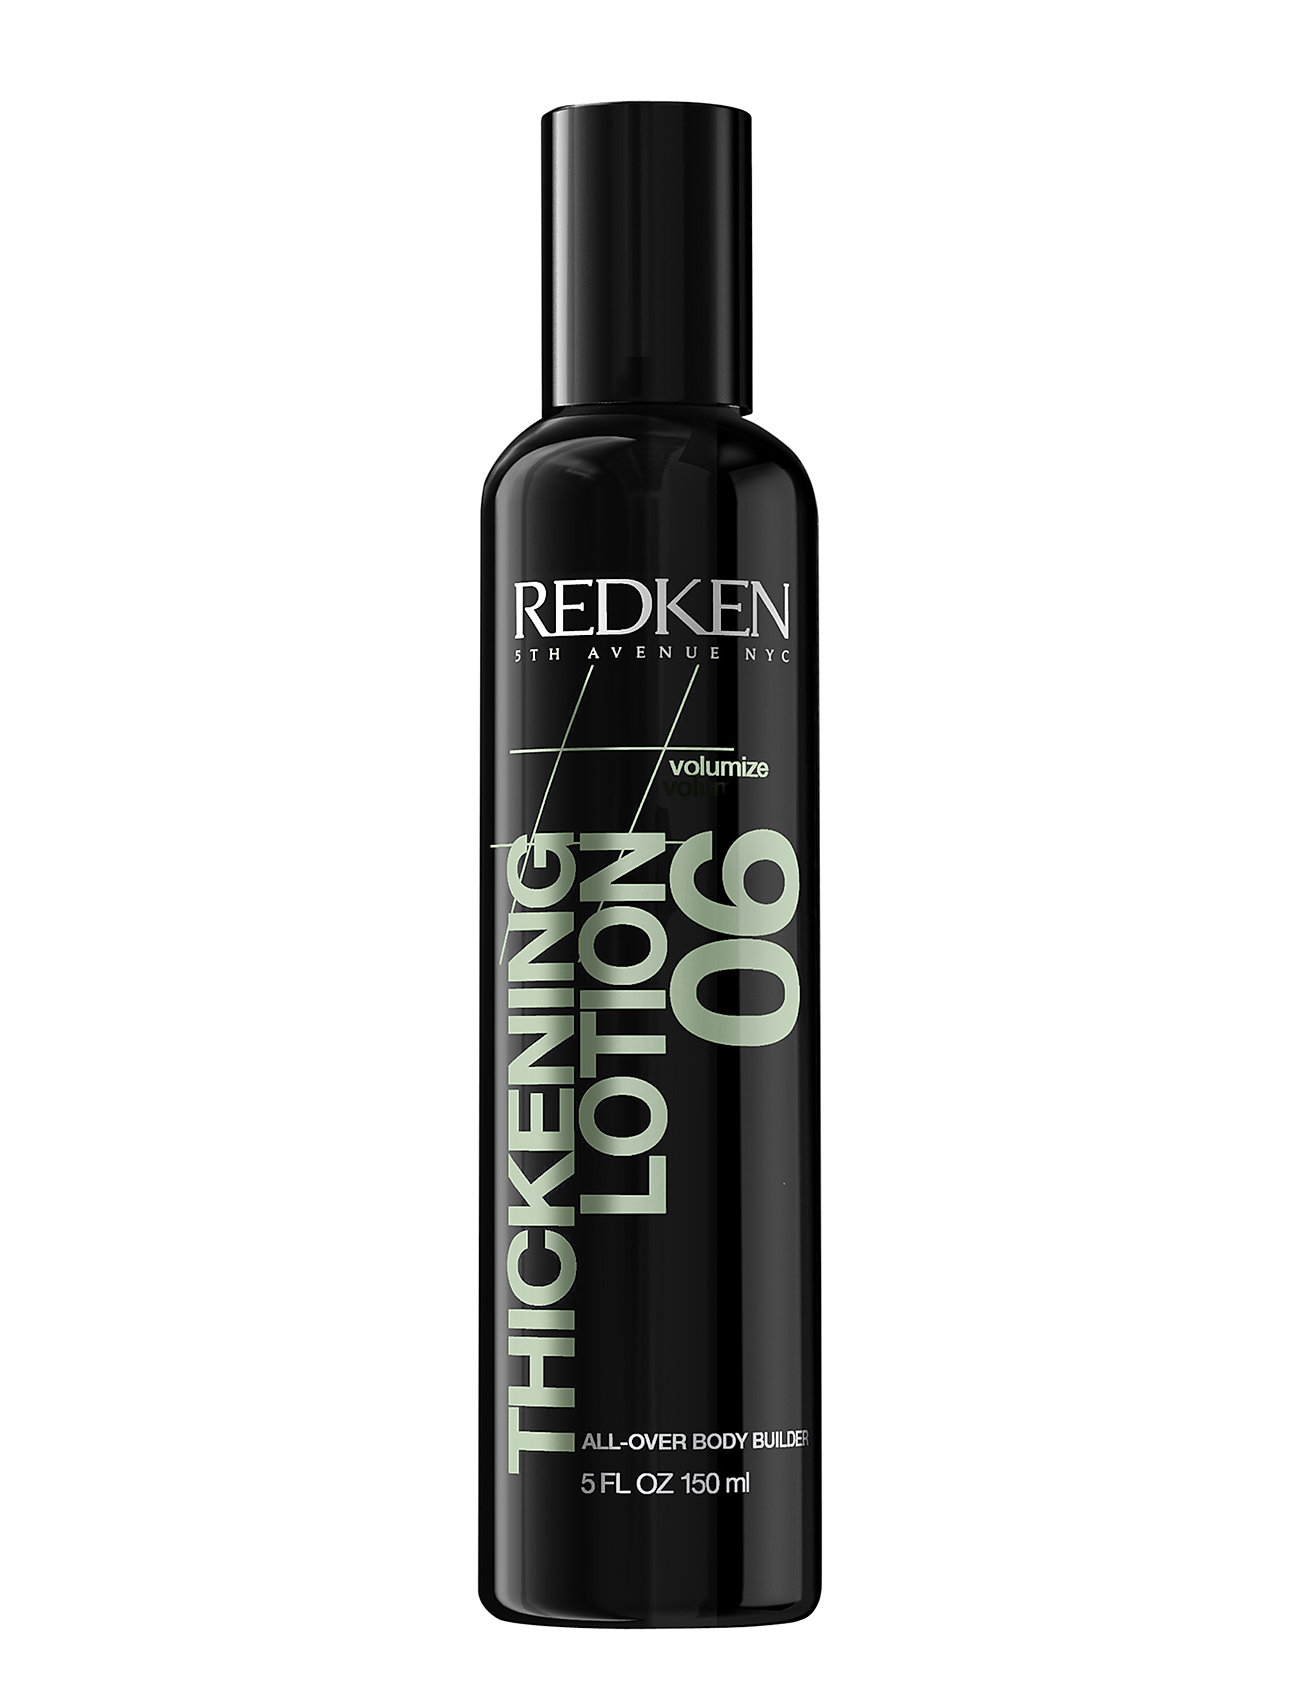 Image of Volumize Thickening Lotion 06 Styling Cream Hårprodukt Nude Redken (3271715811)